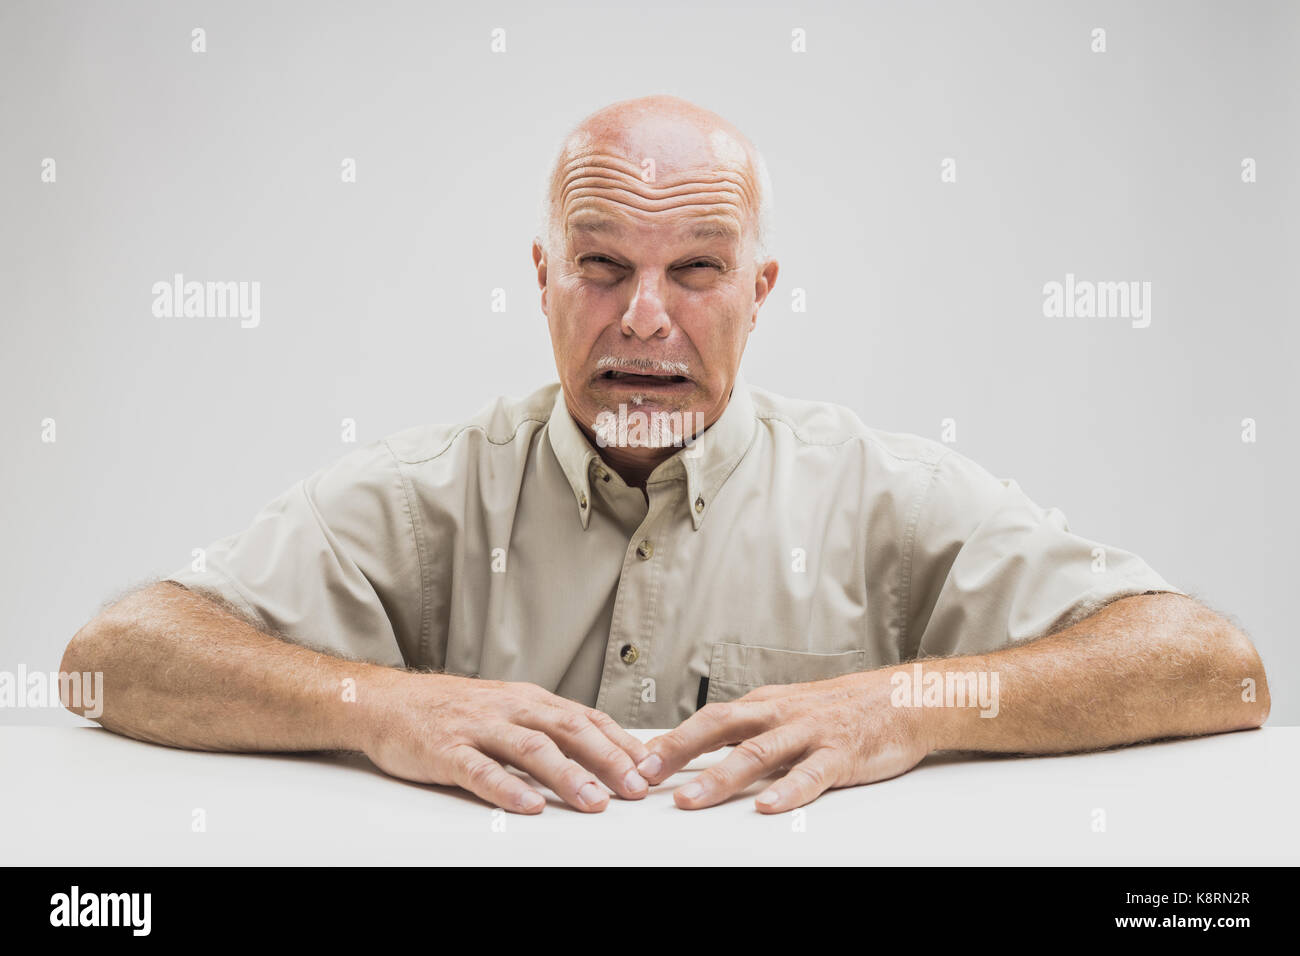 Emotional tearful elderly man blubbering with his face contorted into a grimace as he sits at a table over white - Stock Image